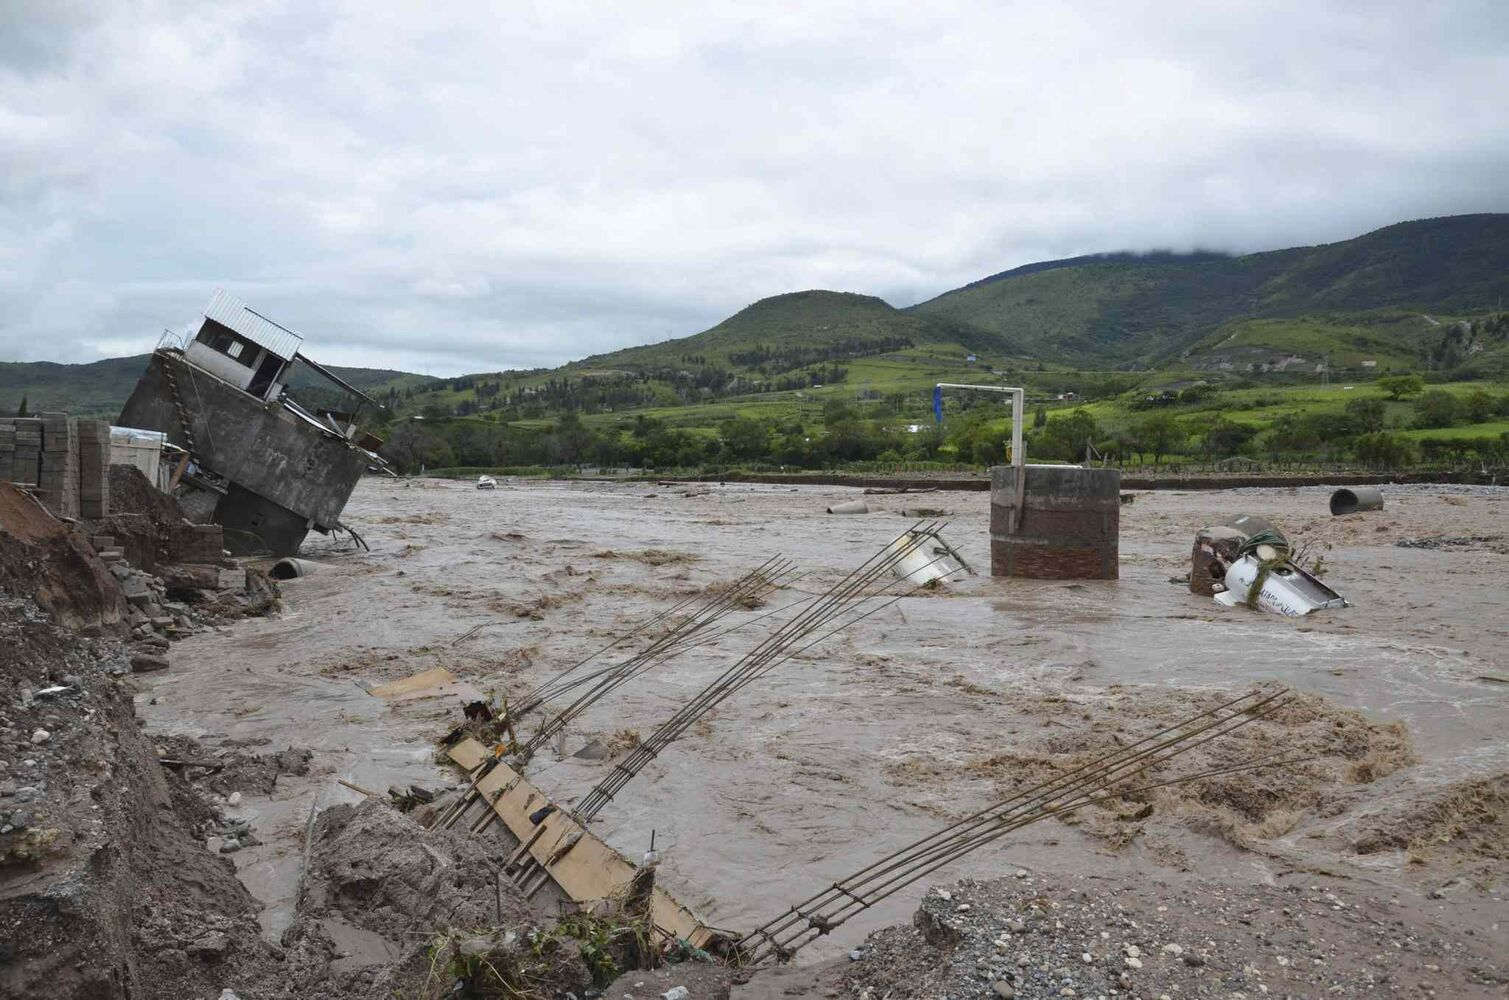 A home dangles on the banks of the Huacapa River overflowed due to heavy rains caused by Tropical Storm Manuel near the town of Petaquillas, Mexico, Tuesday, Sept. 17, 2013. An unknown number of homes were badly damaged by landslides and flooding. (Alejandrino Gonzalez / The Associated Press)